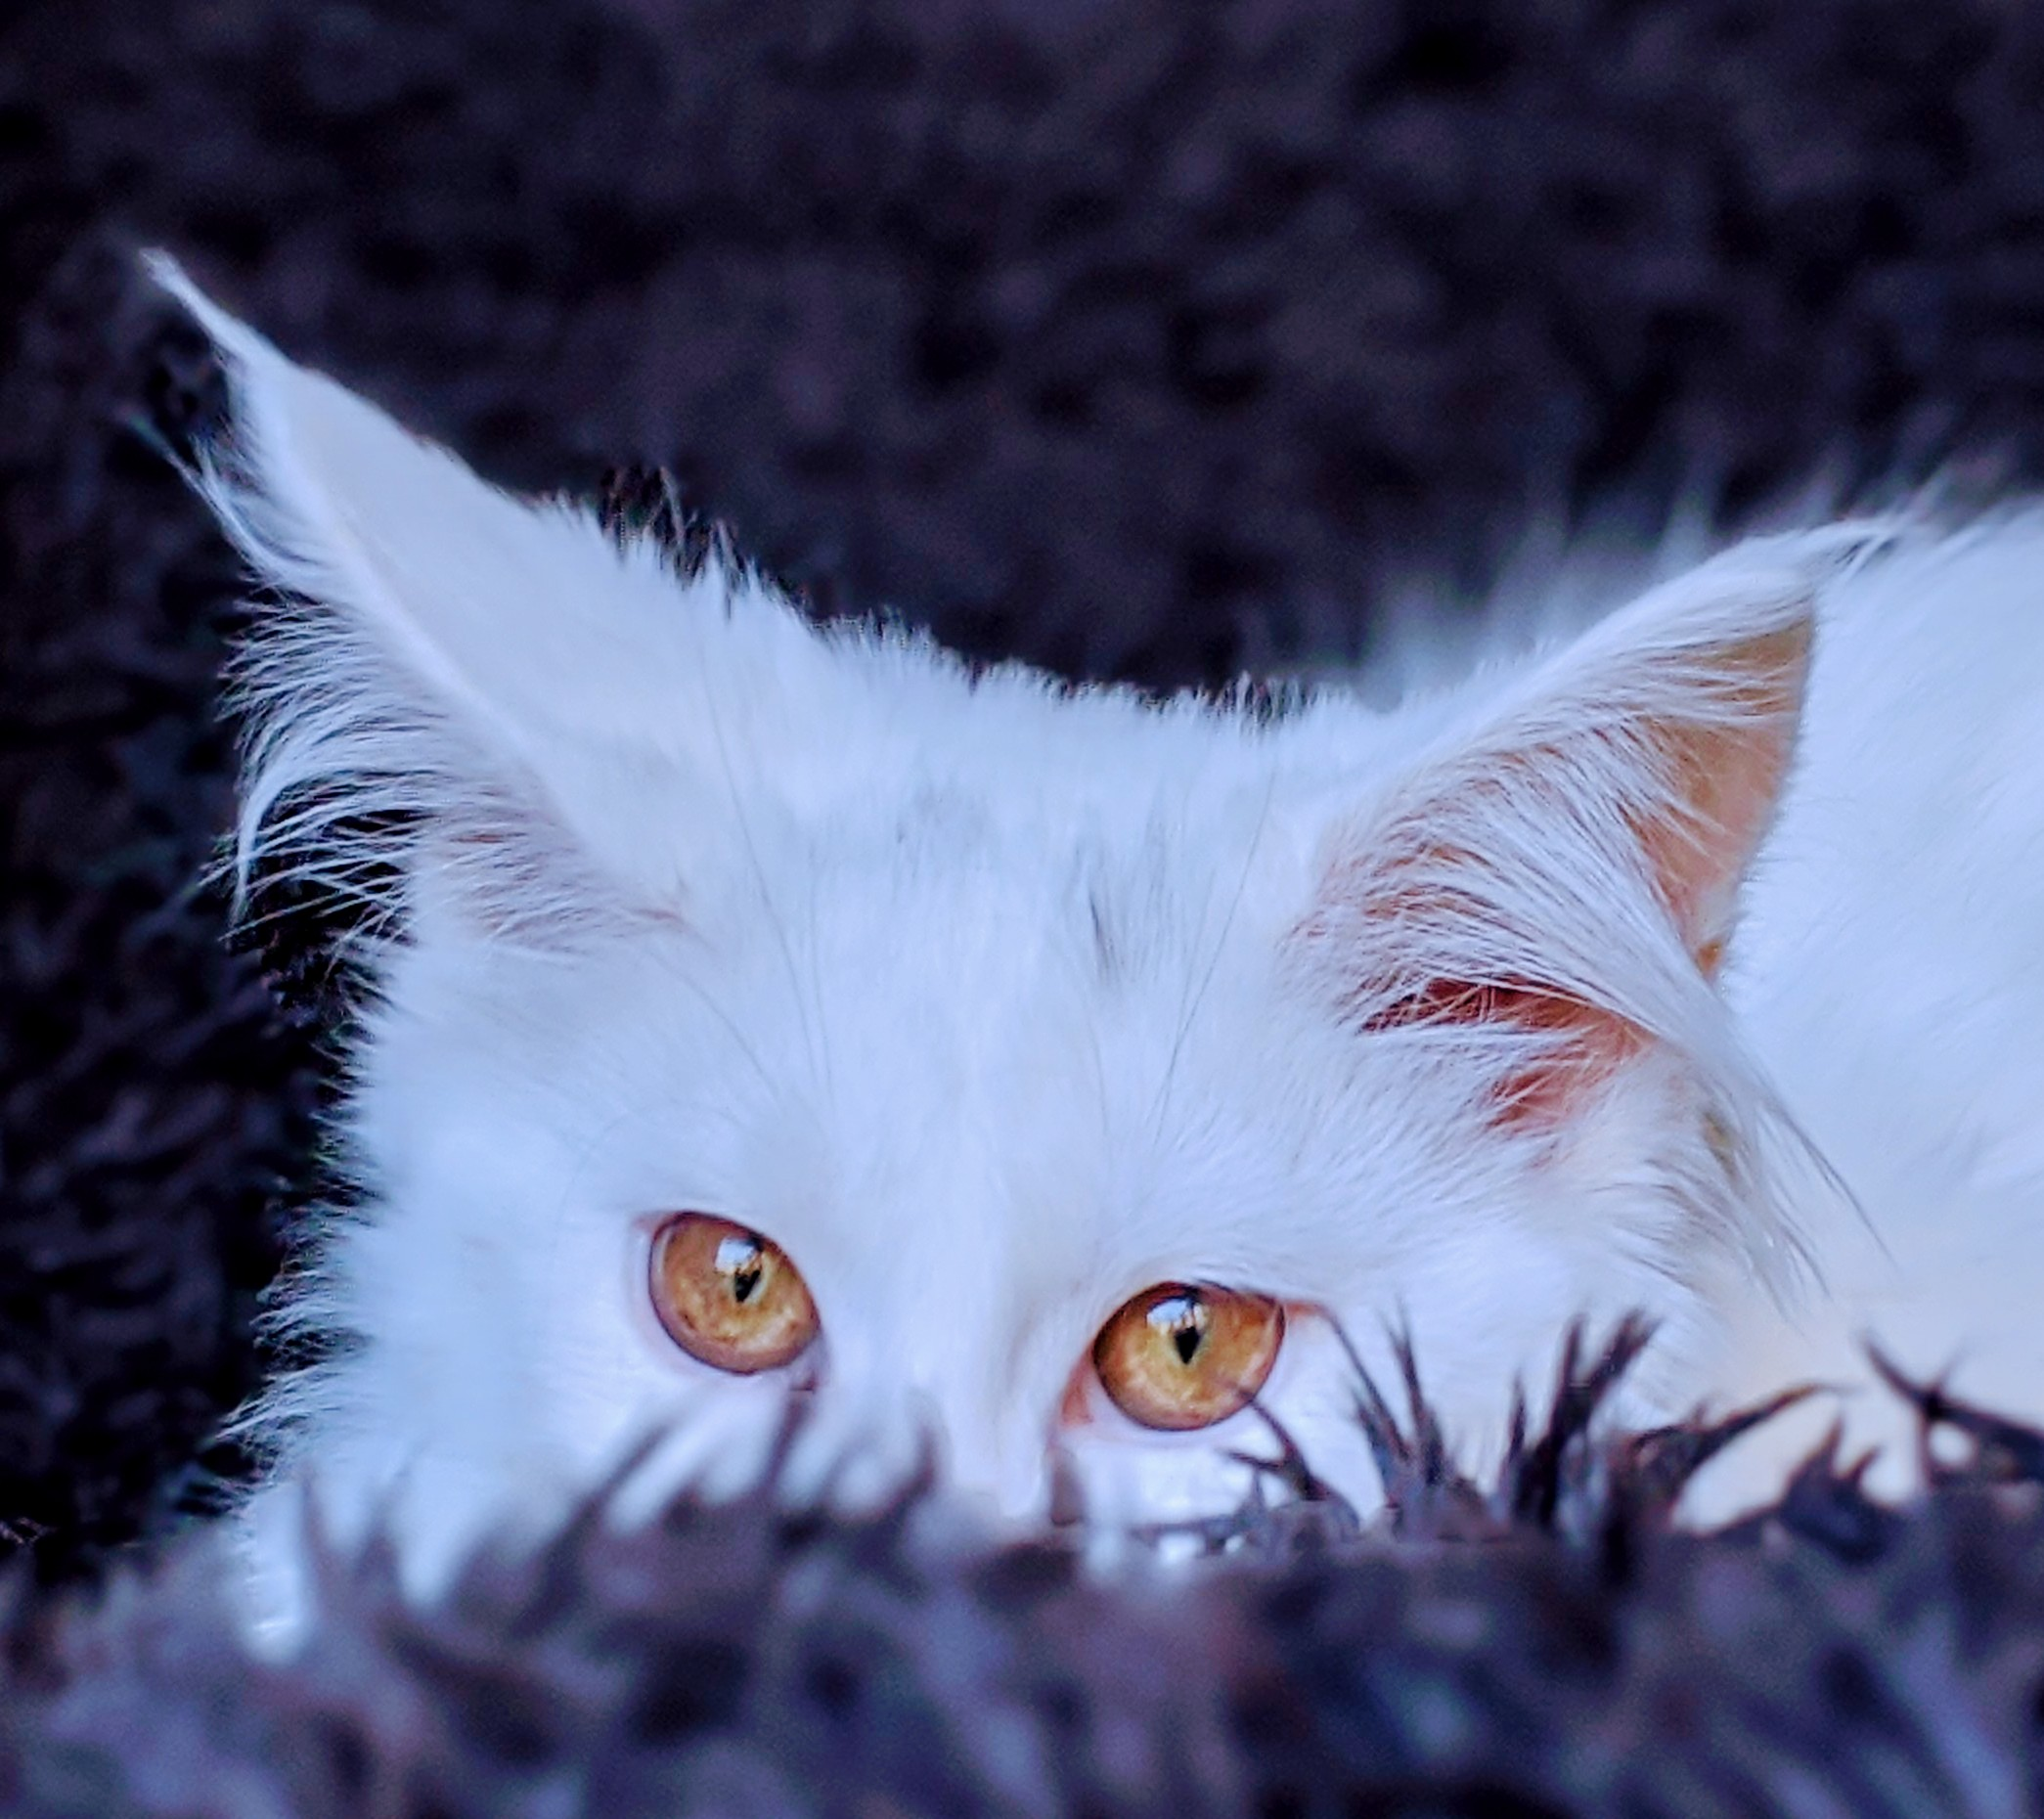 Chatterie Coon Toujours, Riverside de Coon Toujours, chaton femelle maine coon, blanche, yeux or, 5 mois